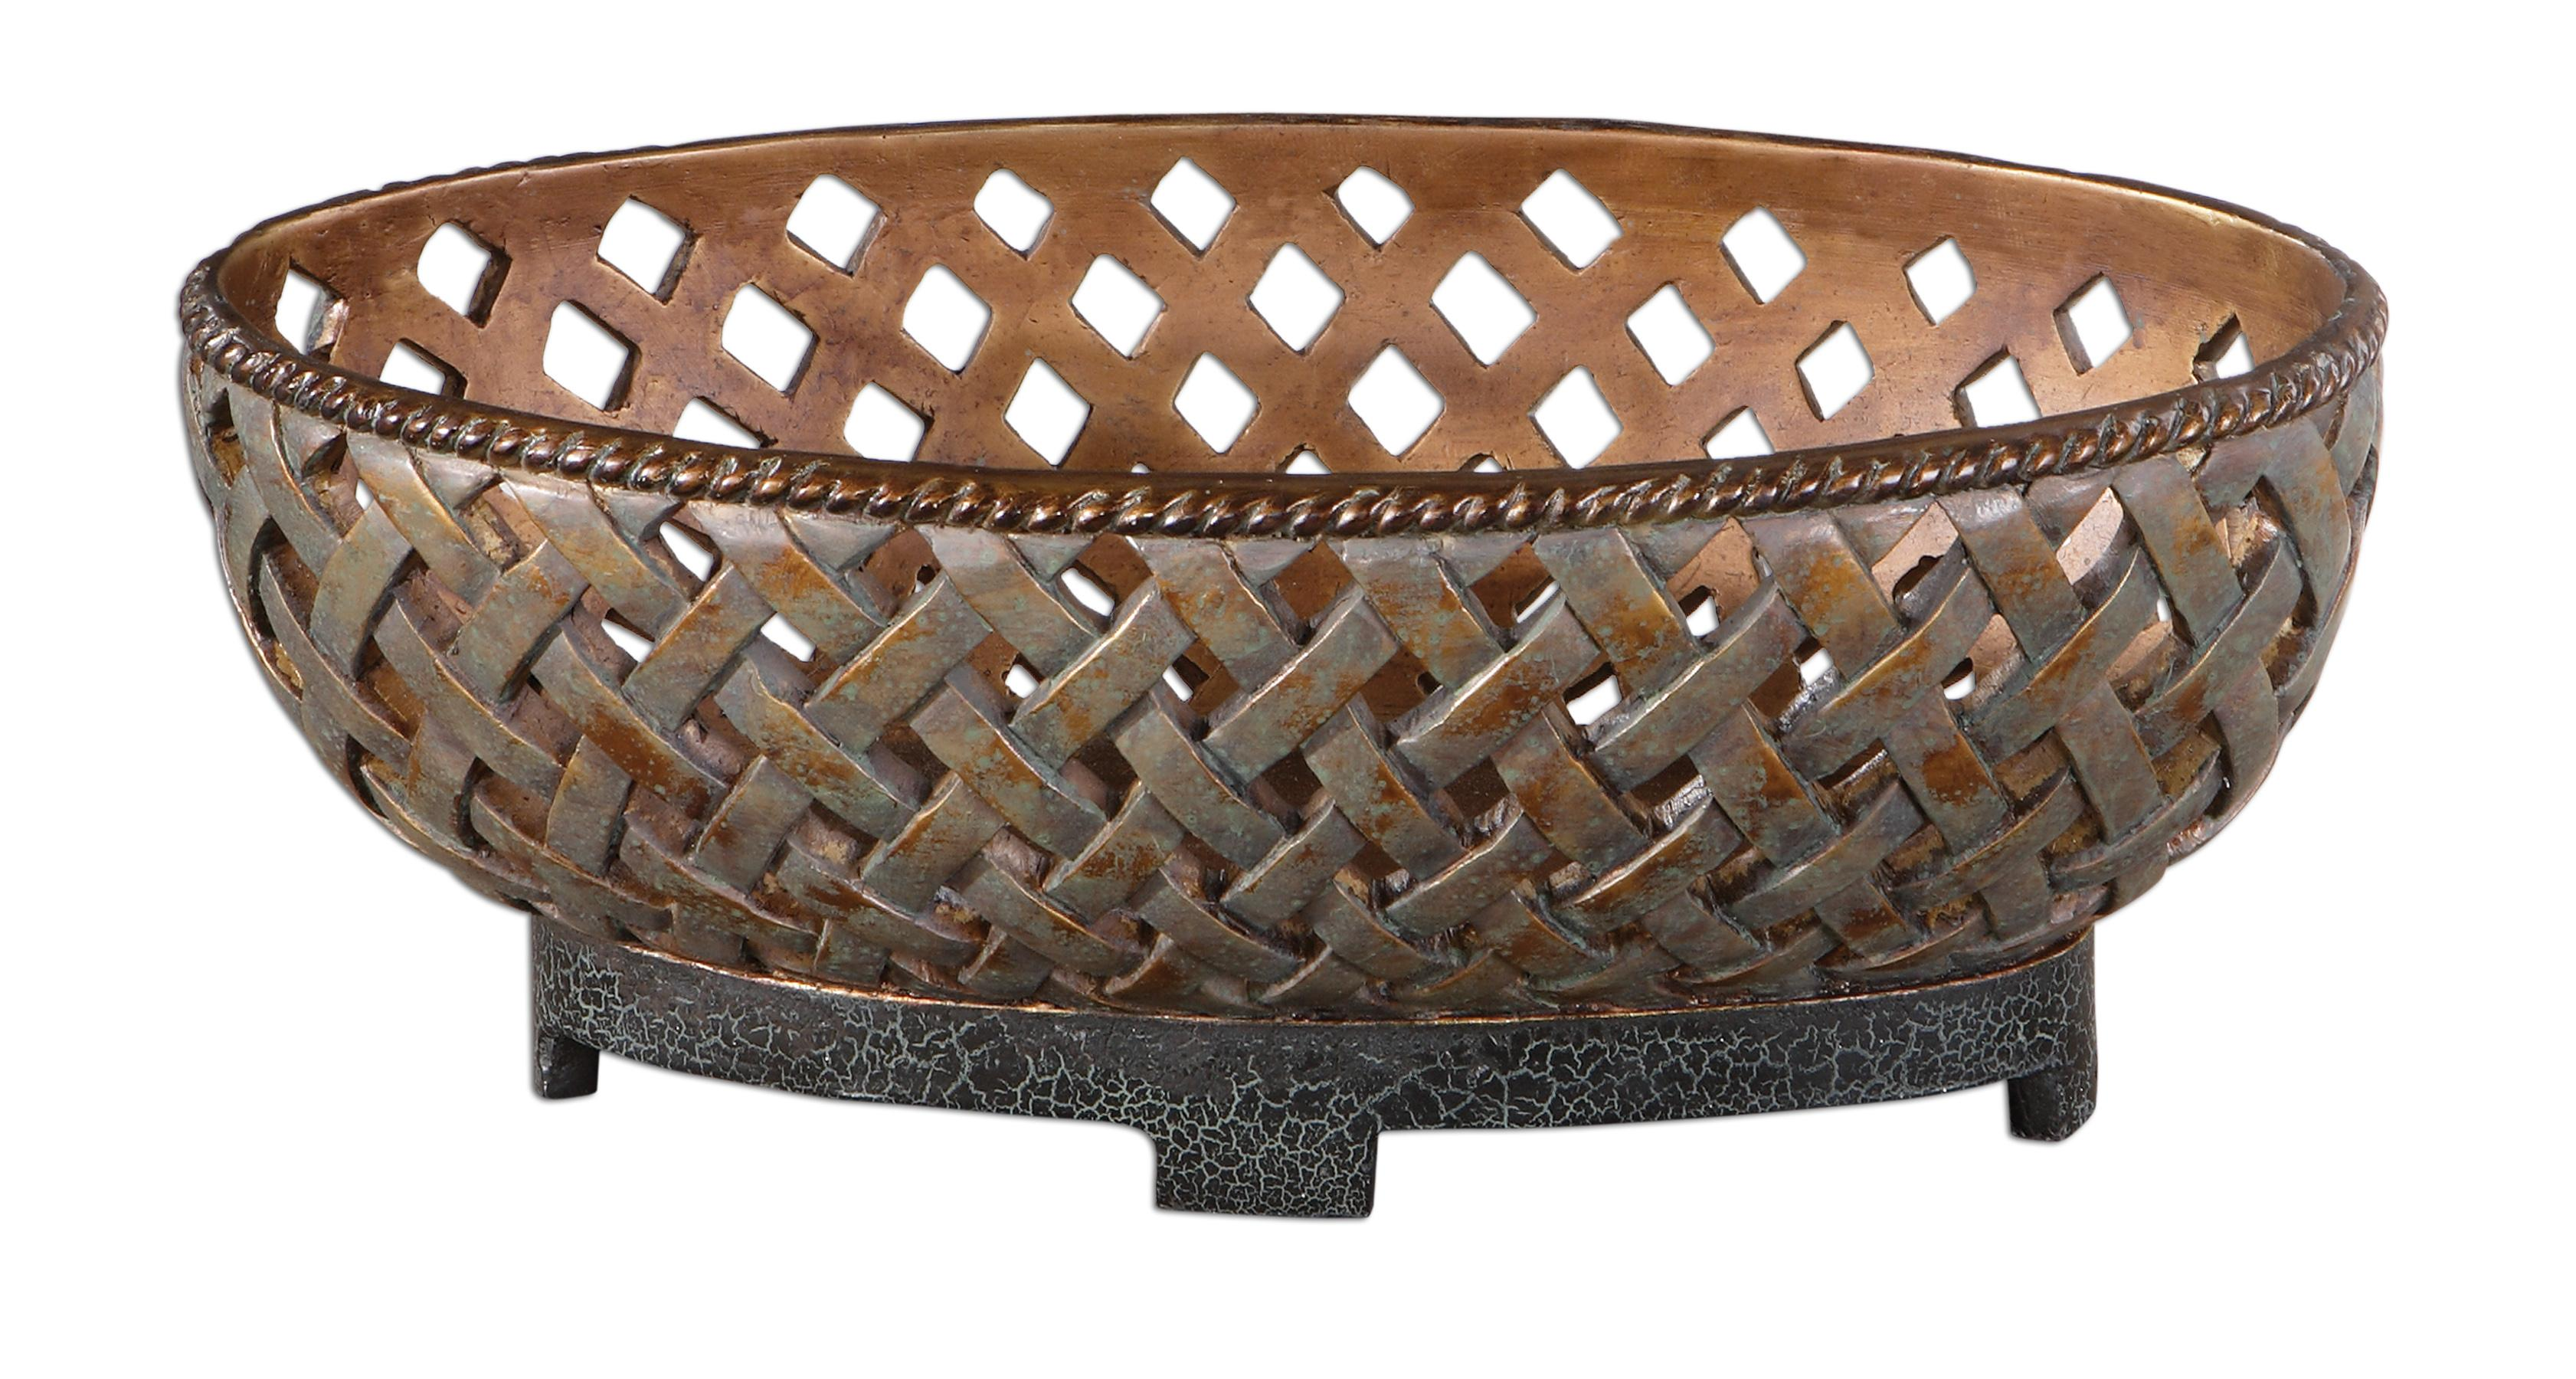 Uttermost Accessories Teneh Bowl - Item Number: 19539